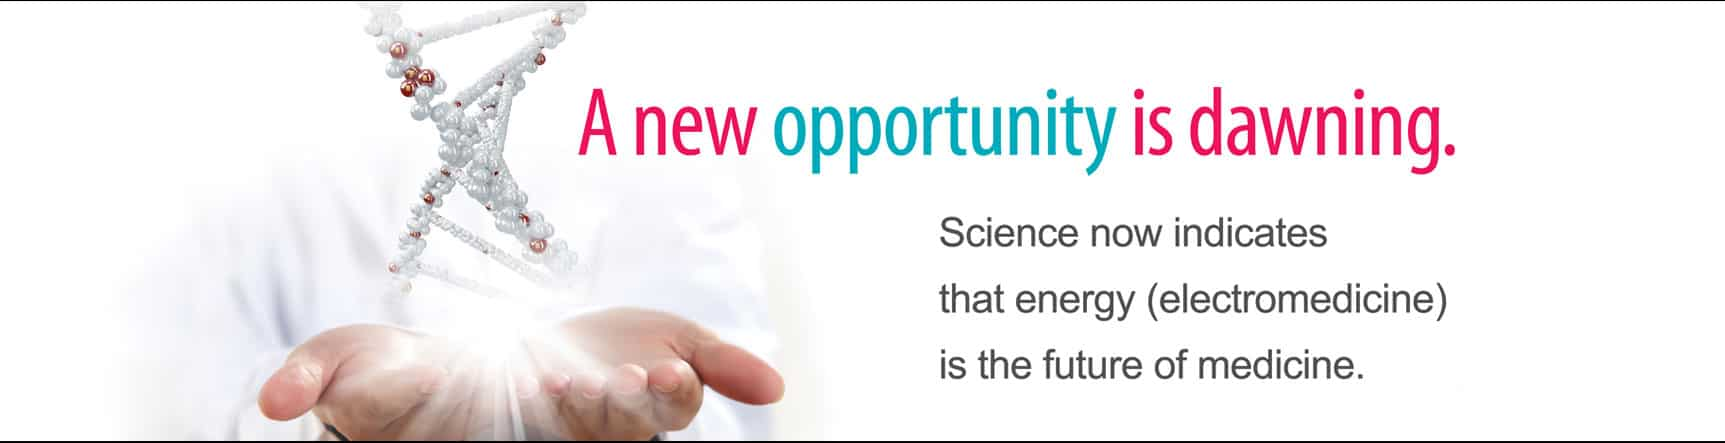 A new opportunity is dawning. Science now indicates that energy (electromedicine) is the future of medicine.